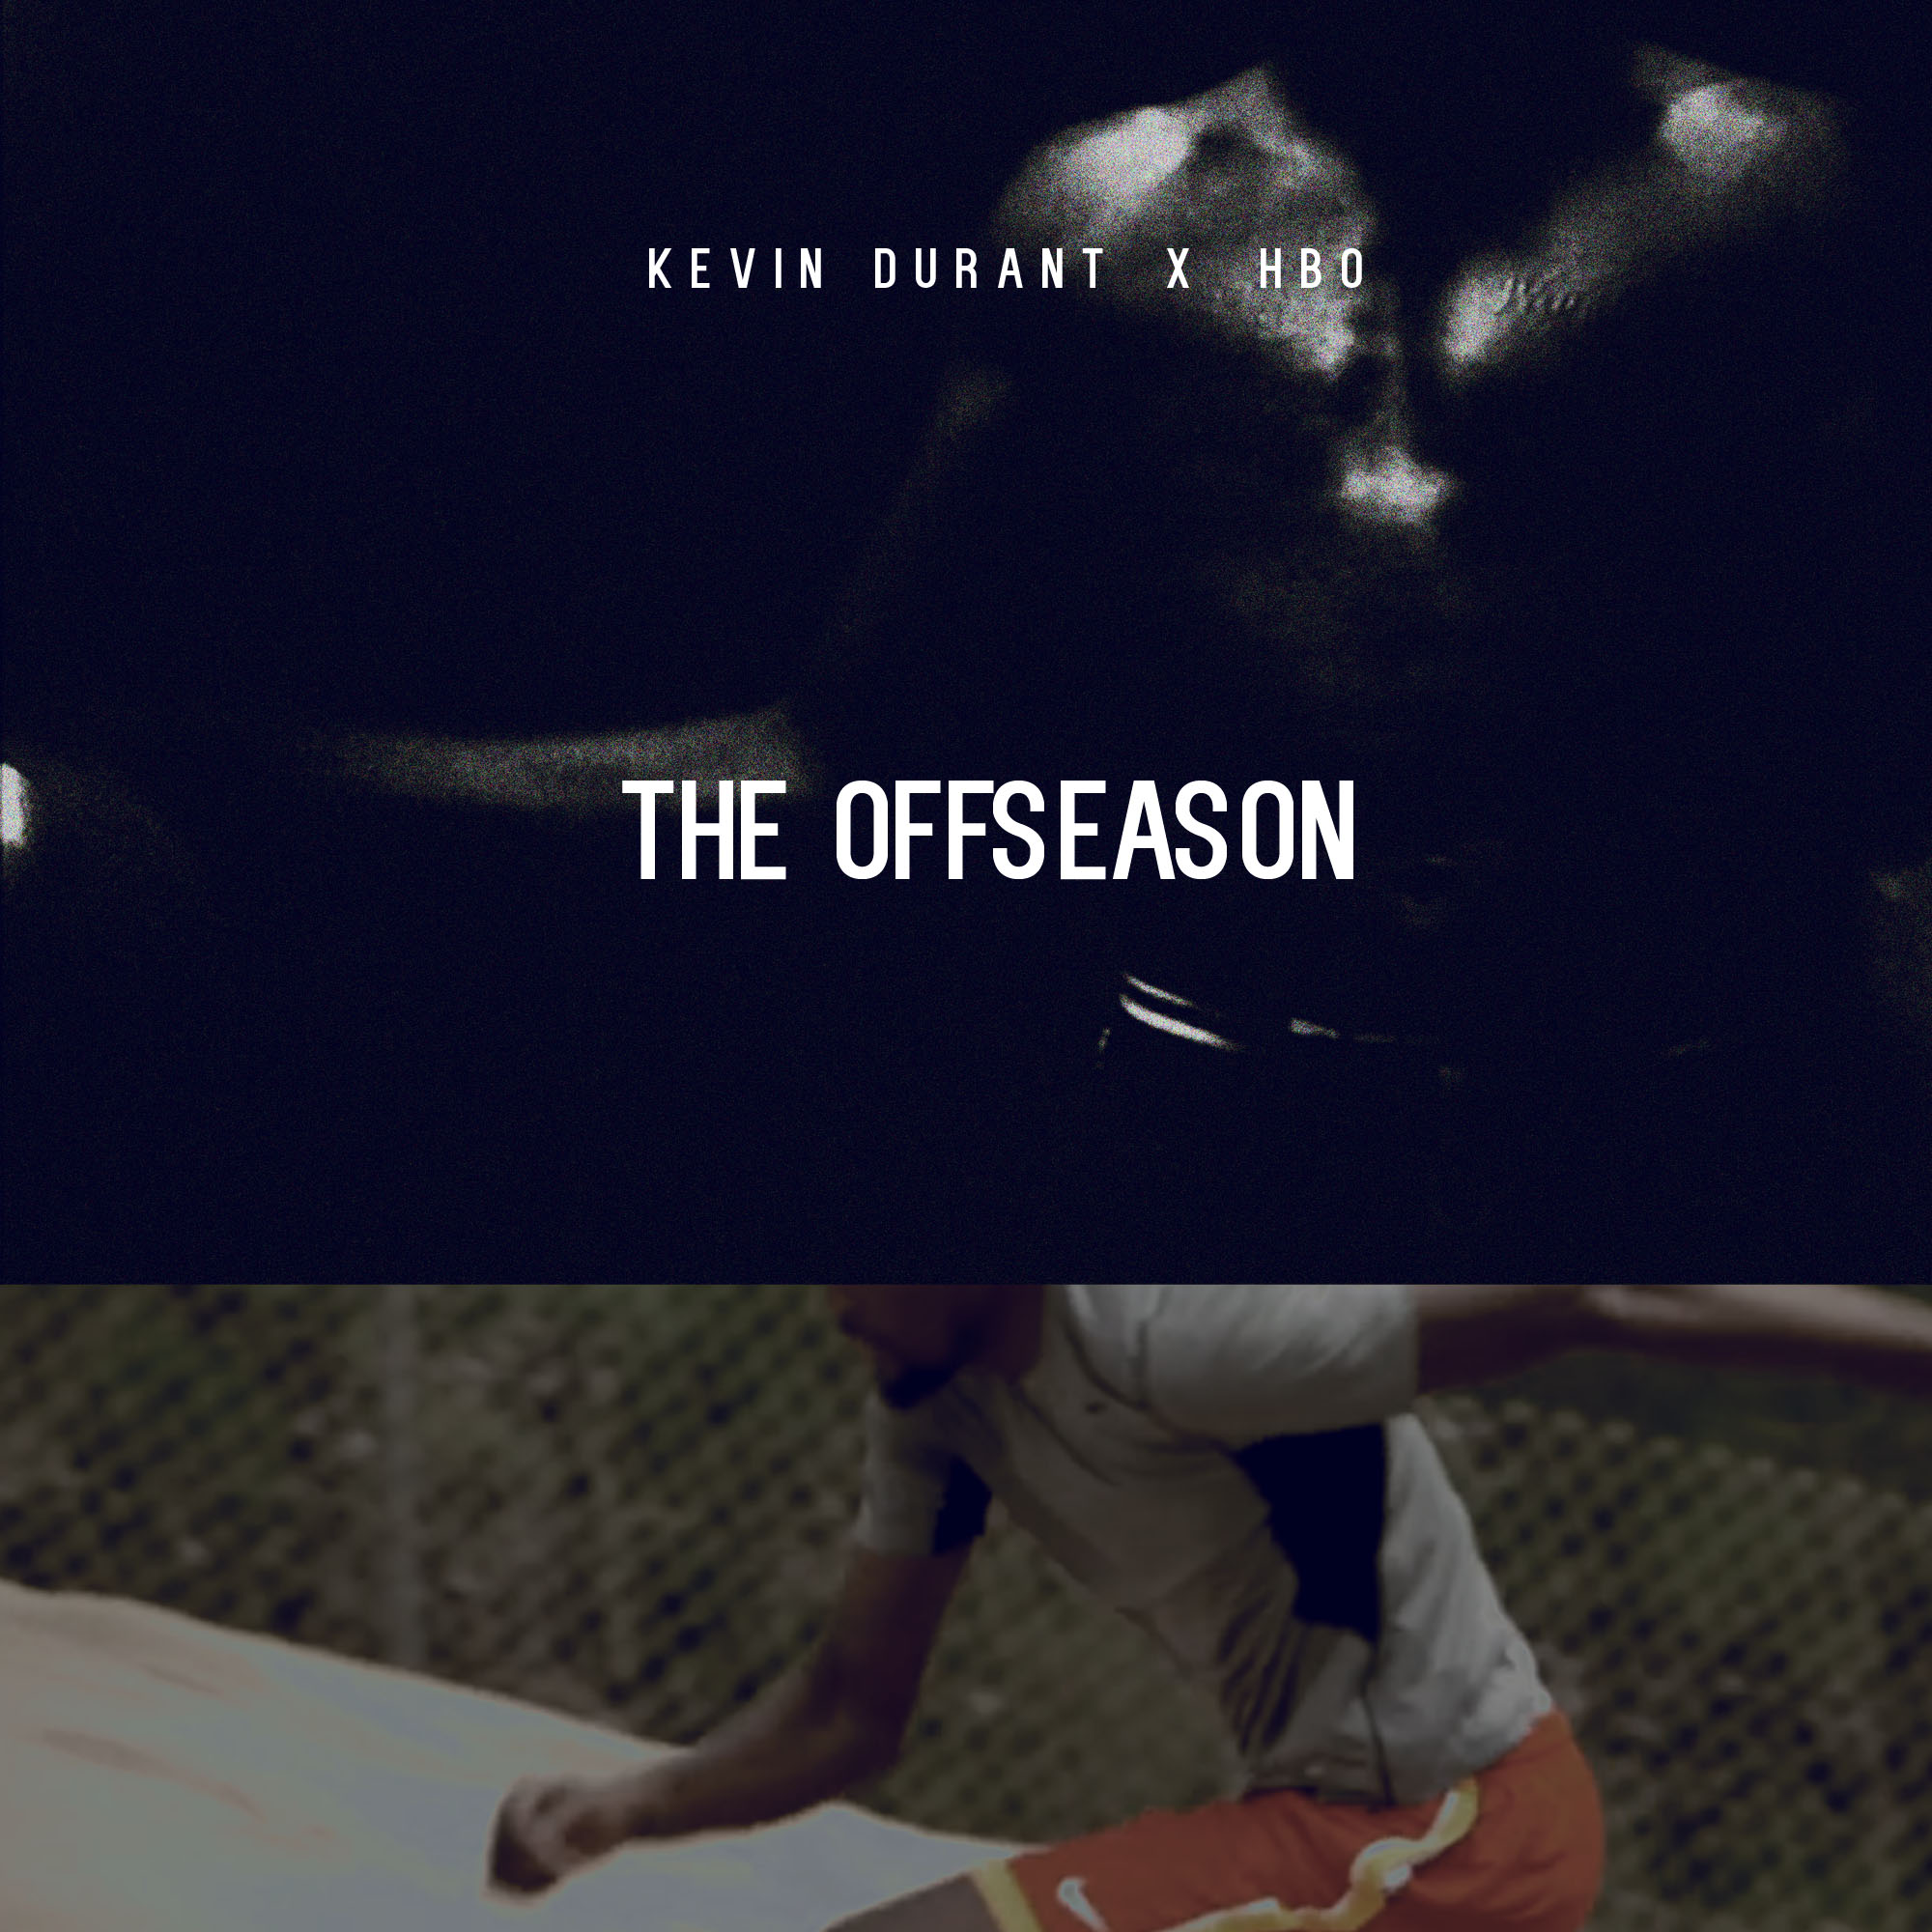 #SHARE: Kevin Durant Offseason HBO Documentary